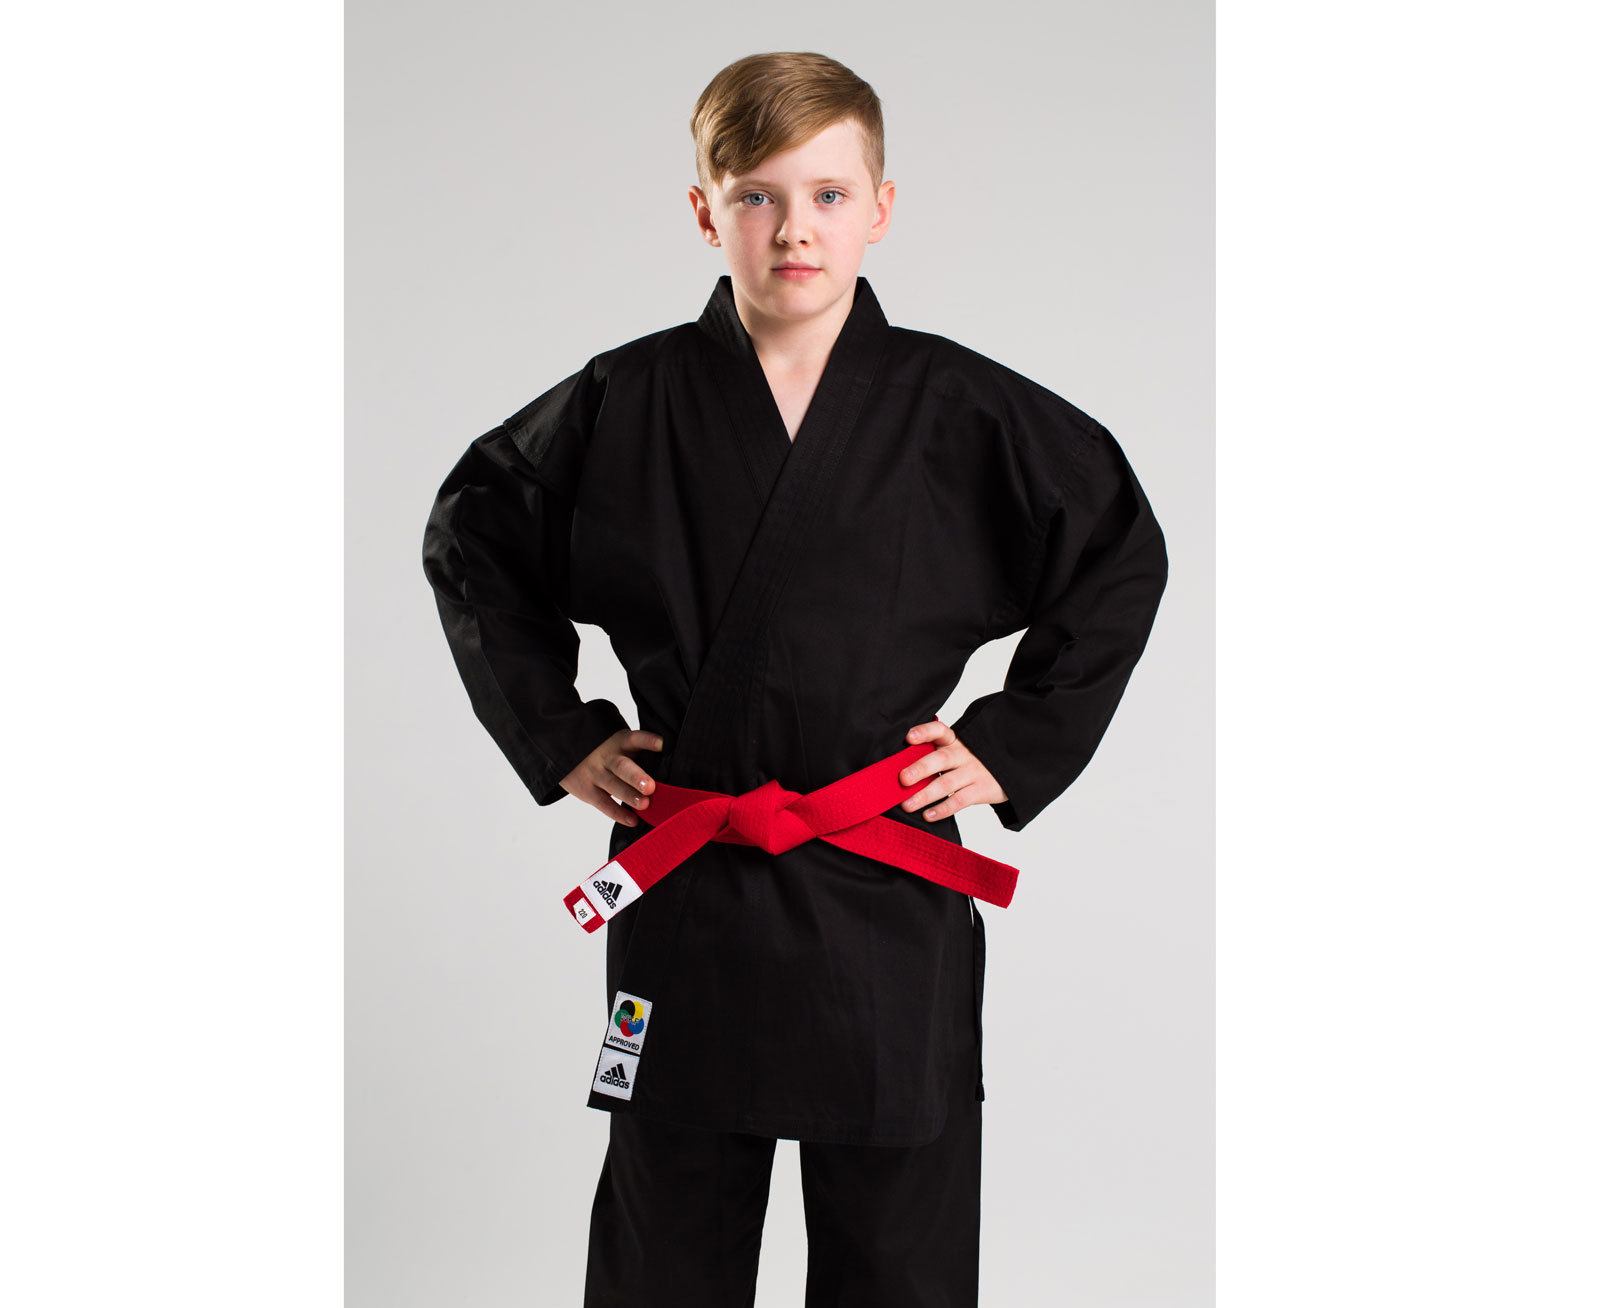 Кимоно КИМОНО ДЛЯ КАРАТЕ CLUB BLACK WKF ADIDAS kimono_dlya_karate_club_black_wkf_chernoe_pic1.jpg